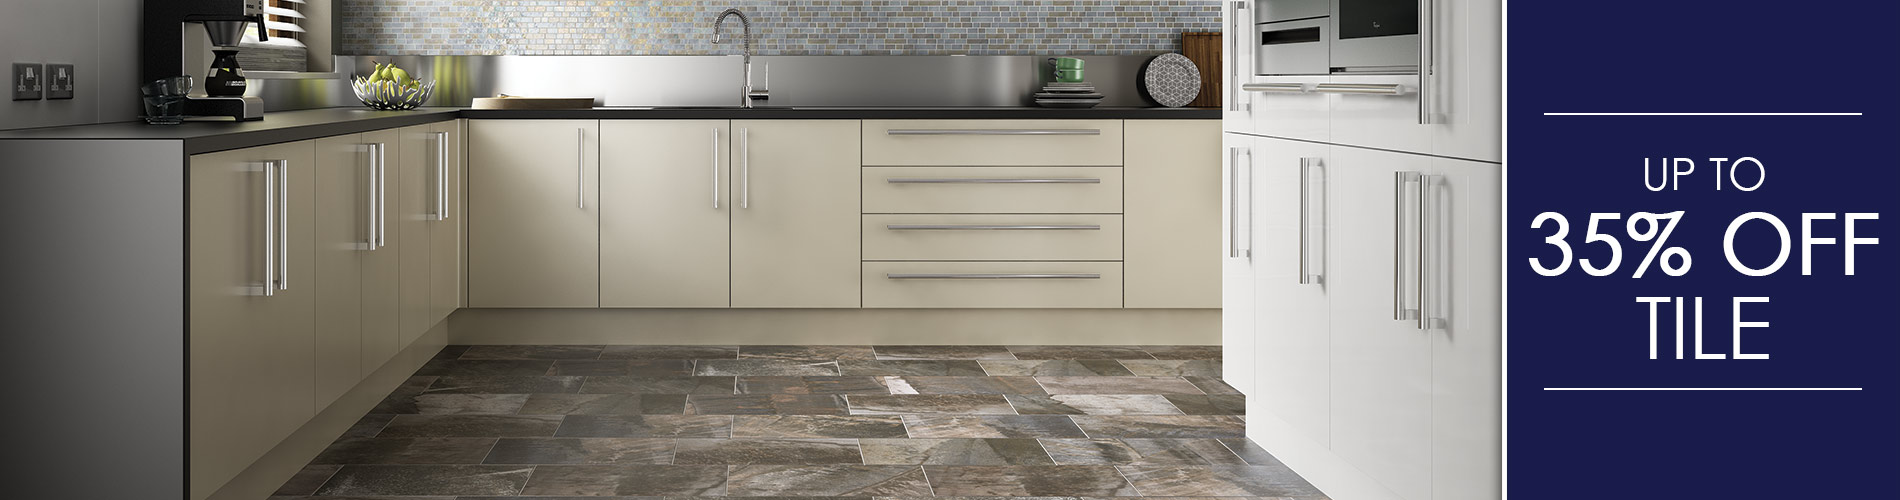 Up to 35% OFF Tile at Abbey Carpet & Floor in Bentonville!